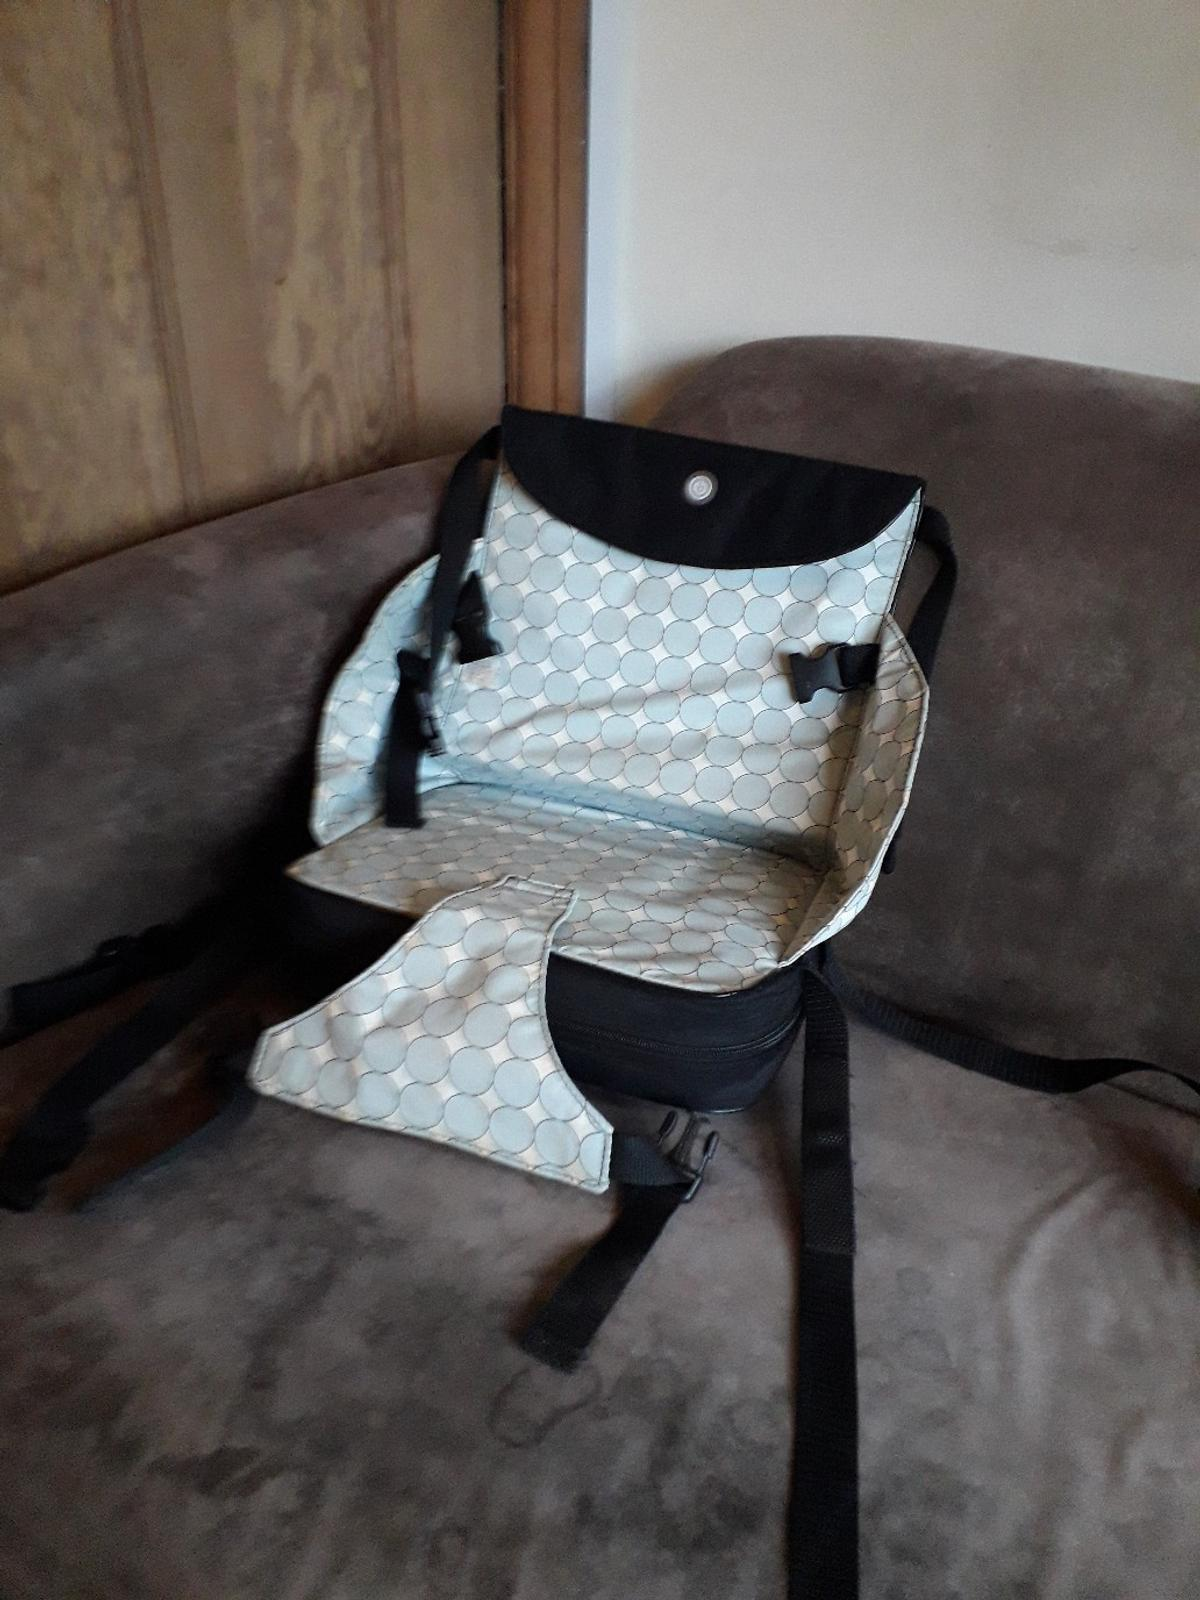 Travel highchair booster feeding seat in for £4.50 for sale